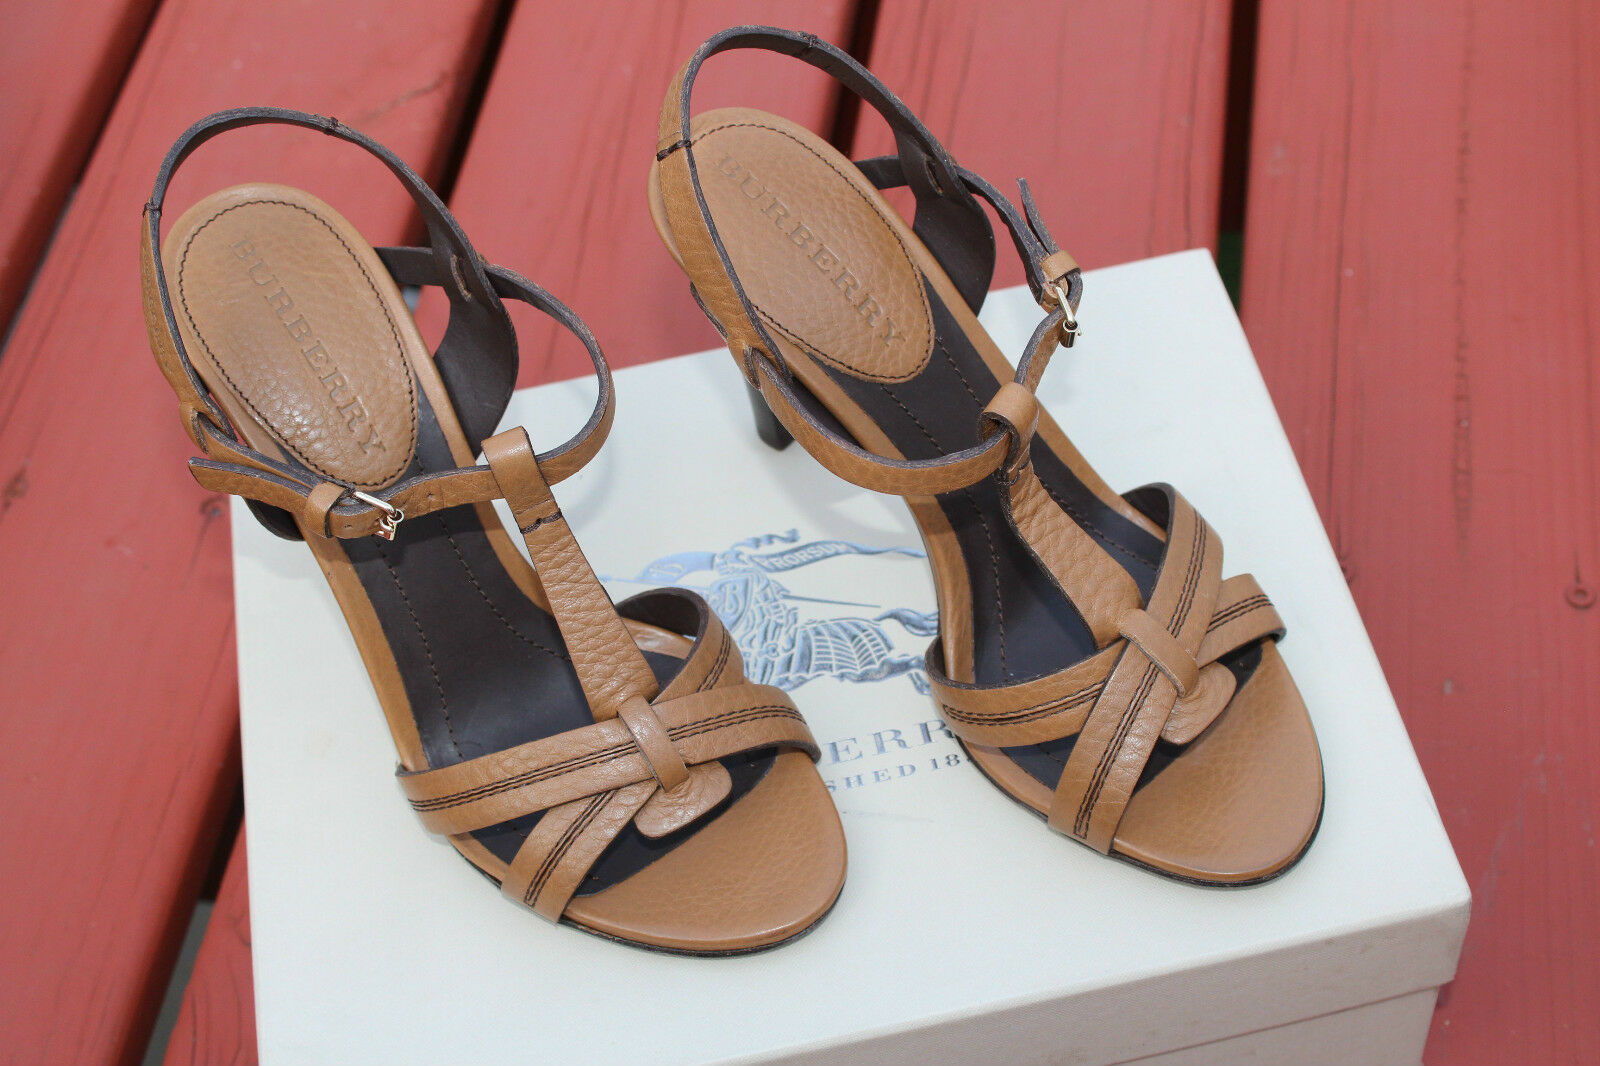 BURBERRY ULSTER BROWN  LEATHER PEEP TOE SANDAL  11us  479